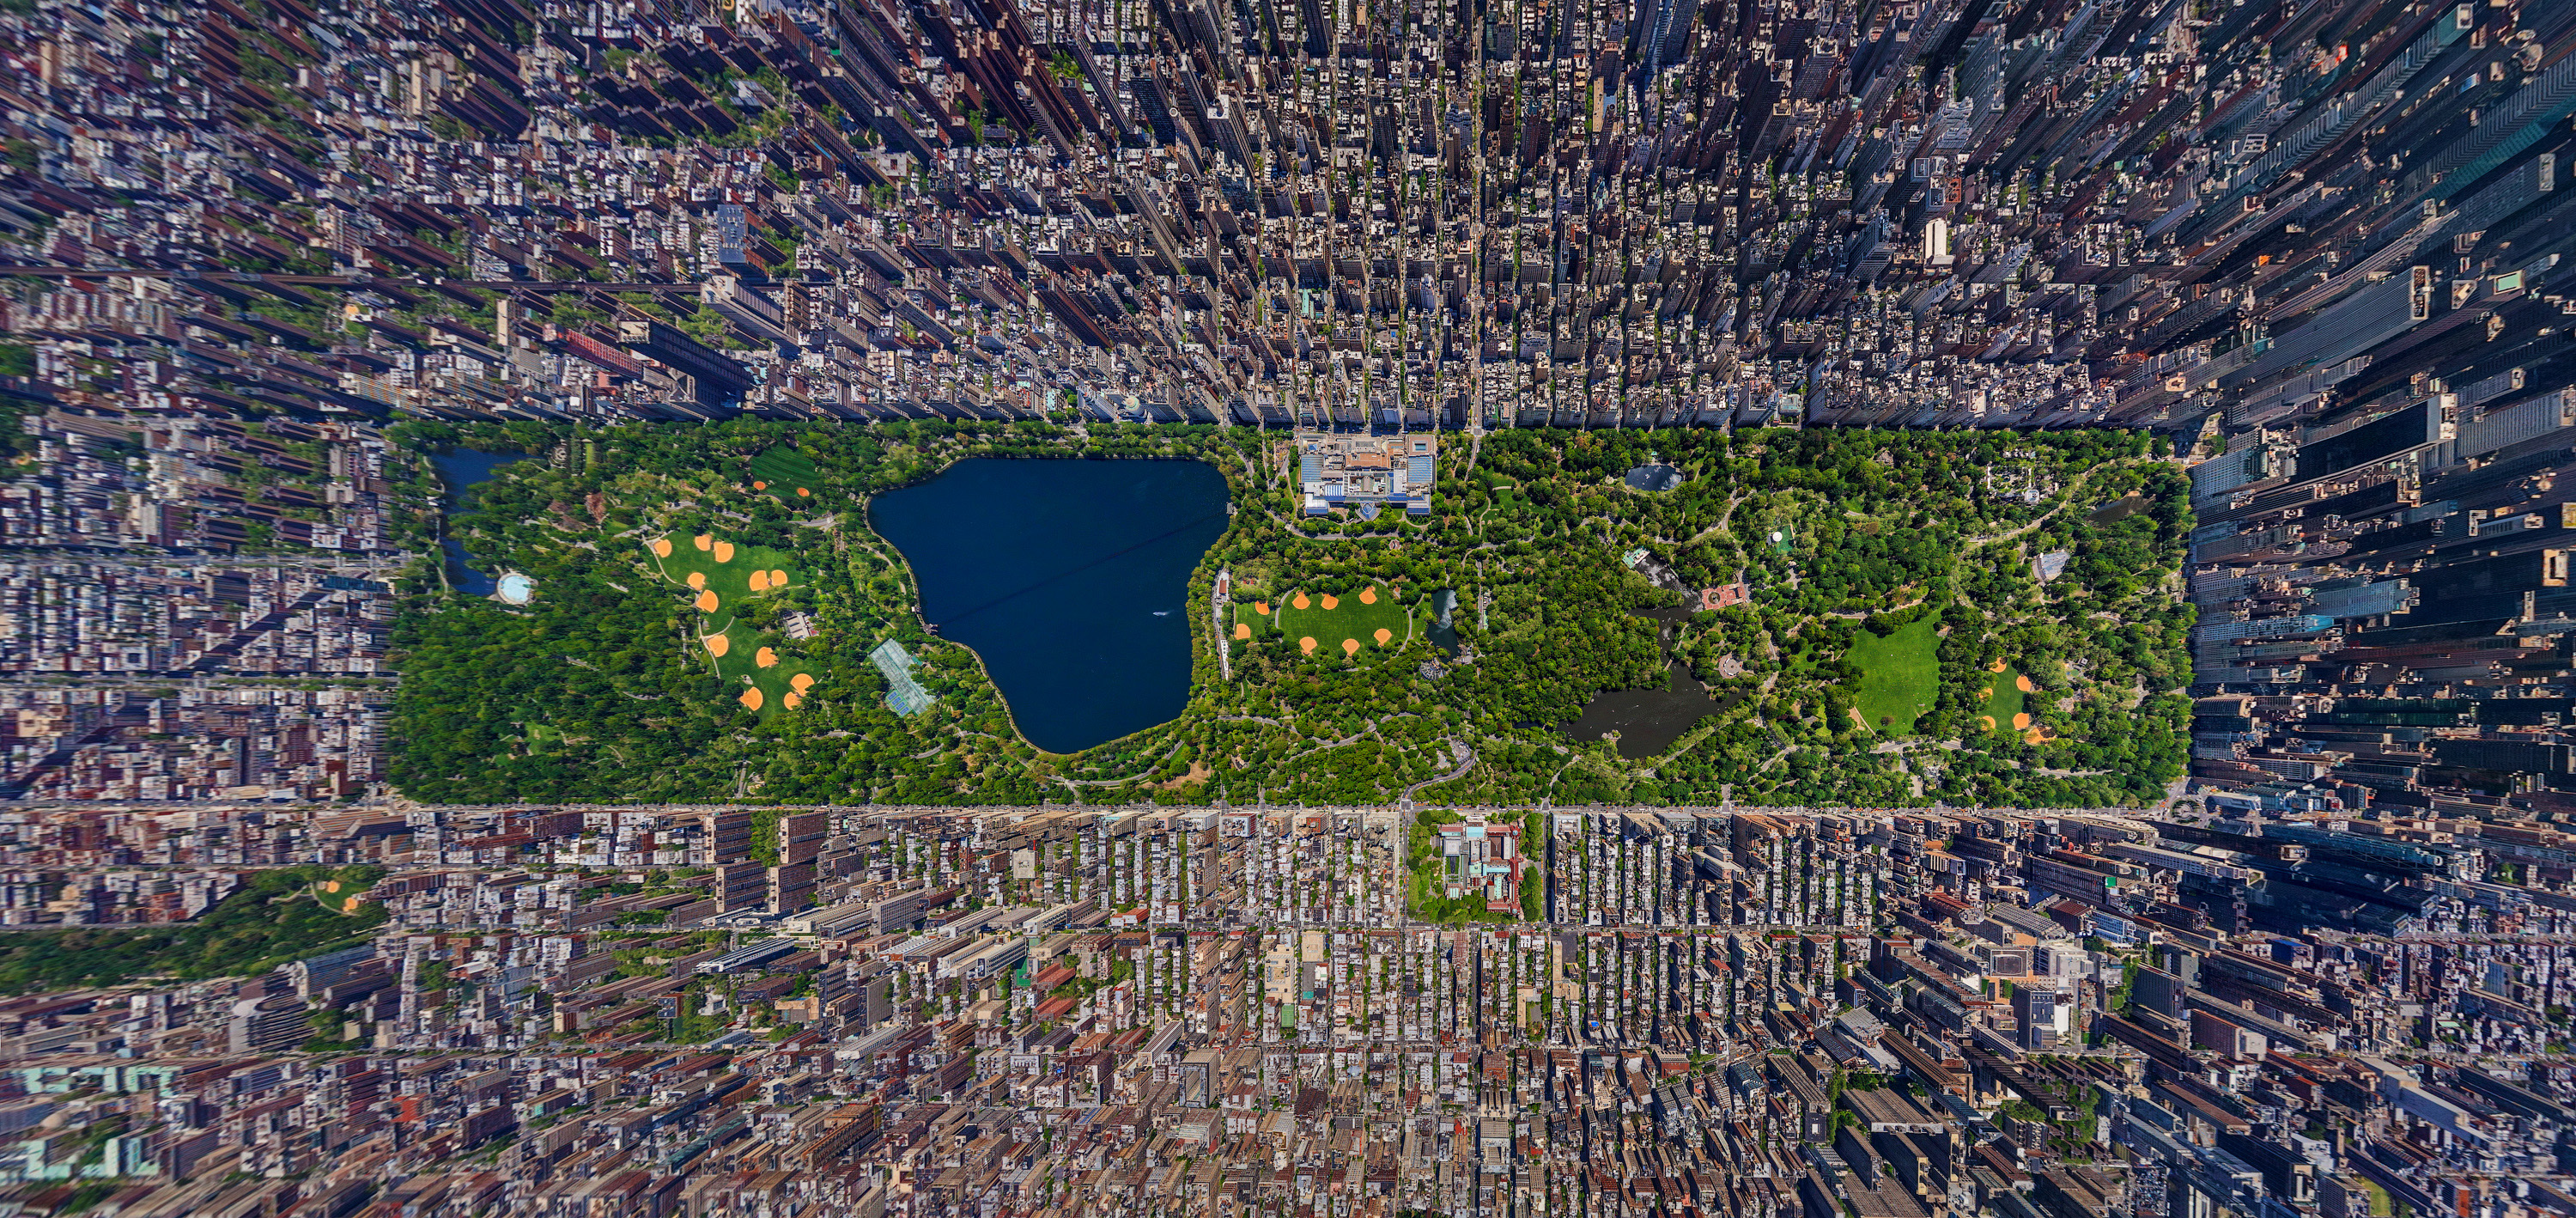 Aerial View of Central Park- Image Courtesy: Will Coldwell